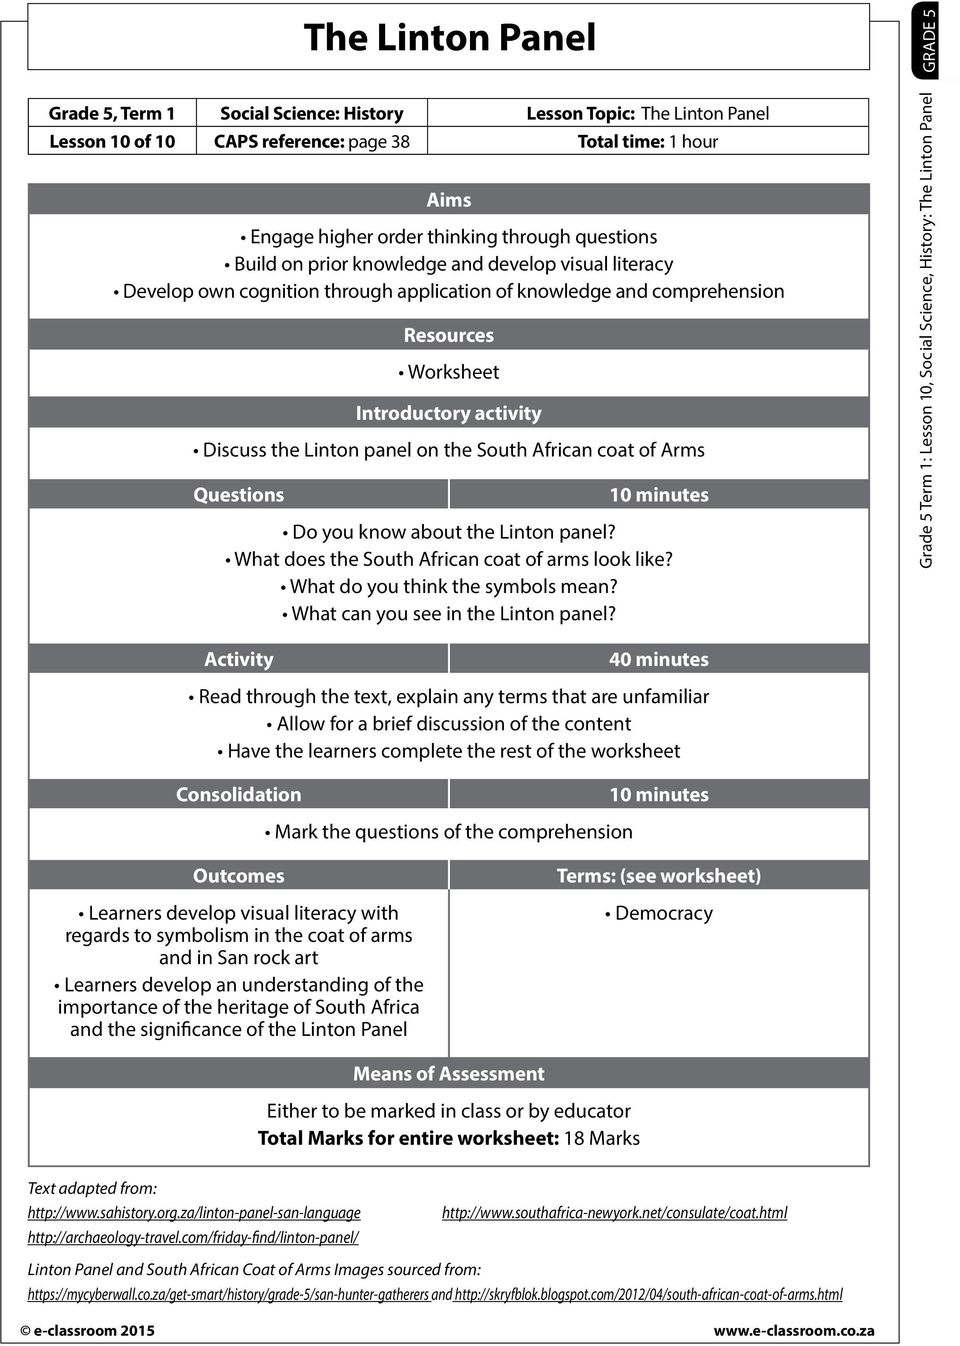 hight resolution of The Linton Panel. Resources Worksheet Introductory activity Discuss the  Linton panel on the South African coat of Arms - PDF Free Download